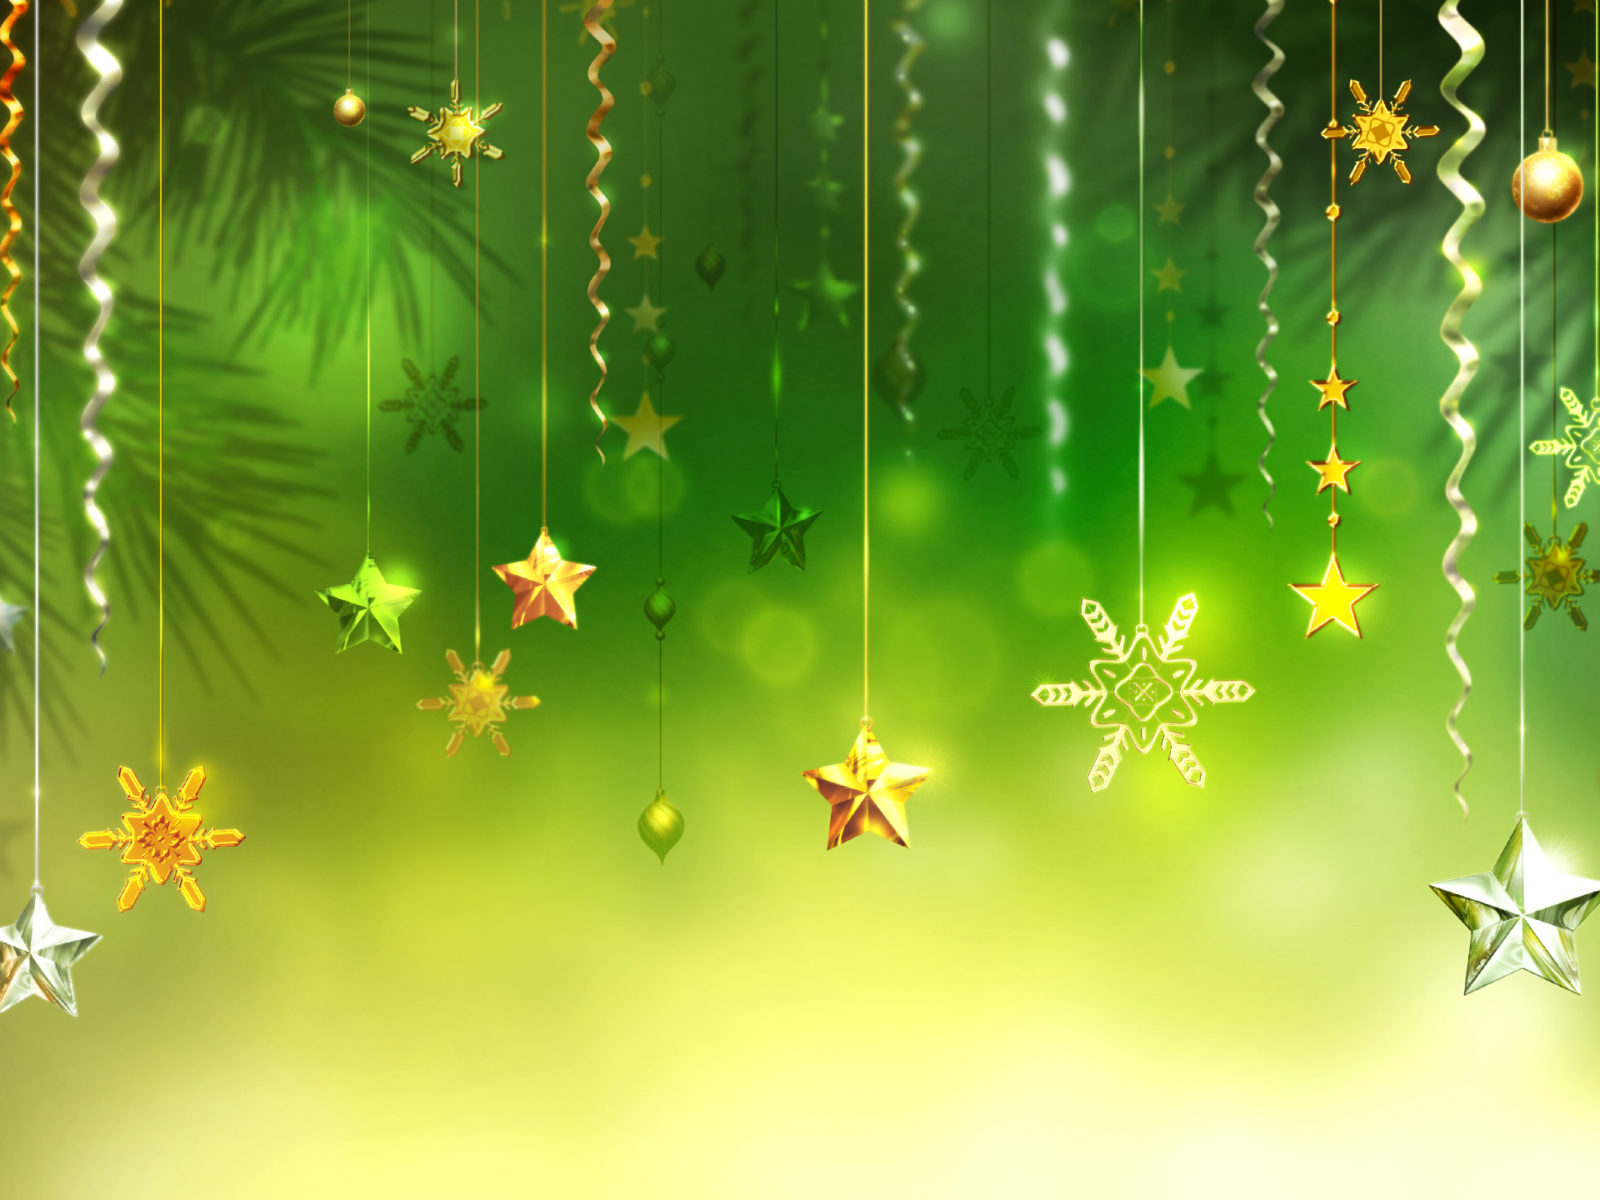 Gif Wallpaper Iphone Christmas Green Background Stars Snowflakes Decorative